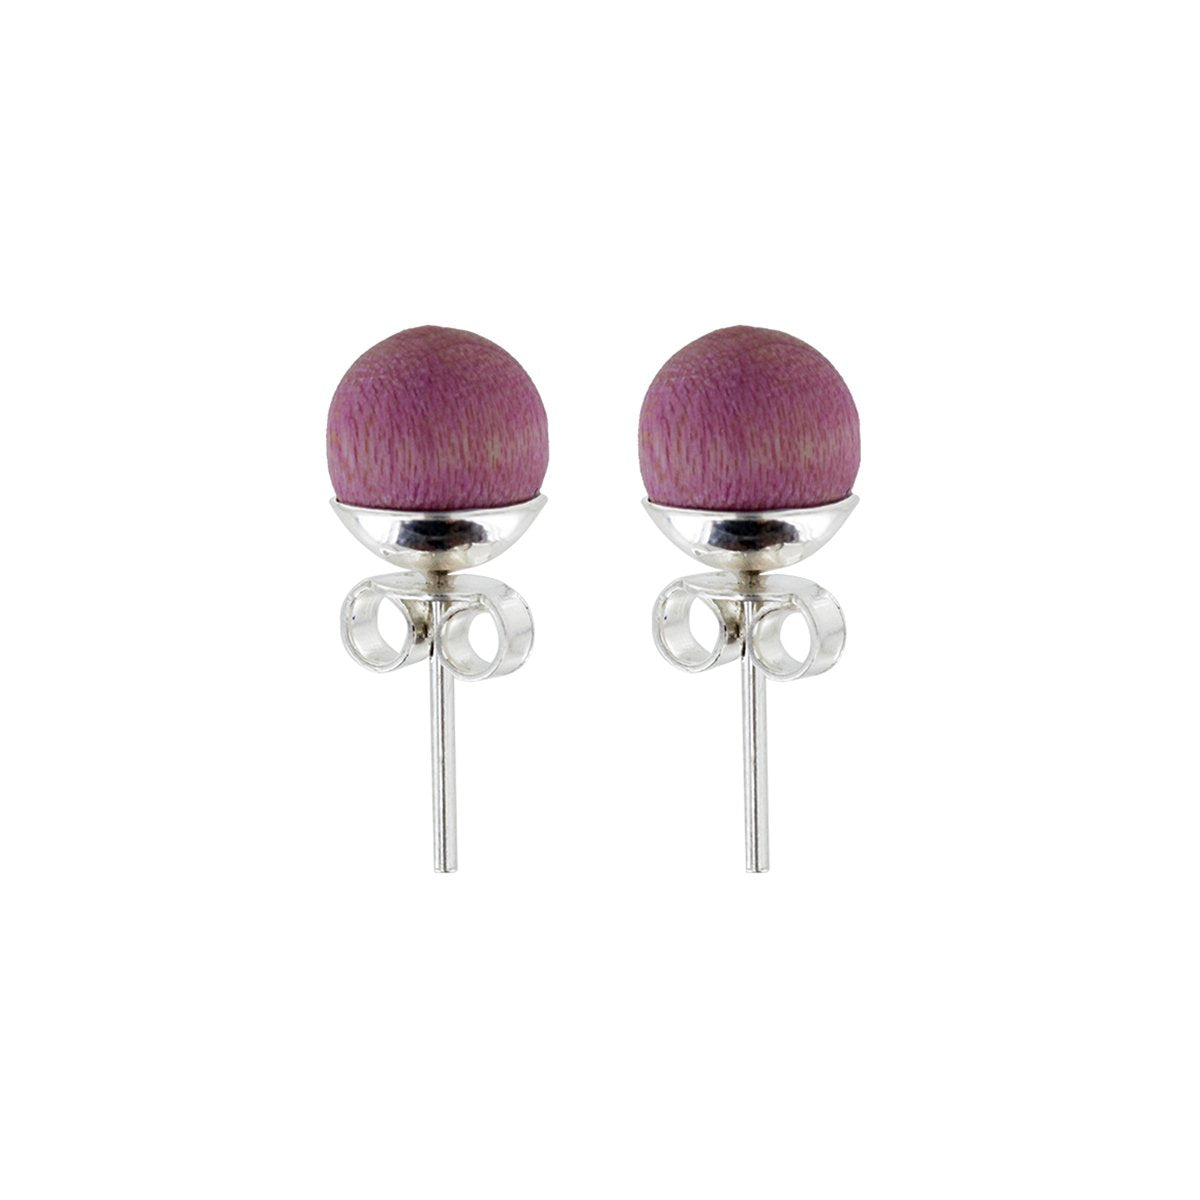 Marja earrings